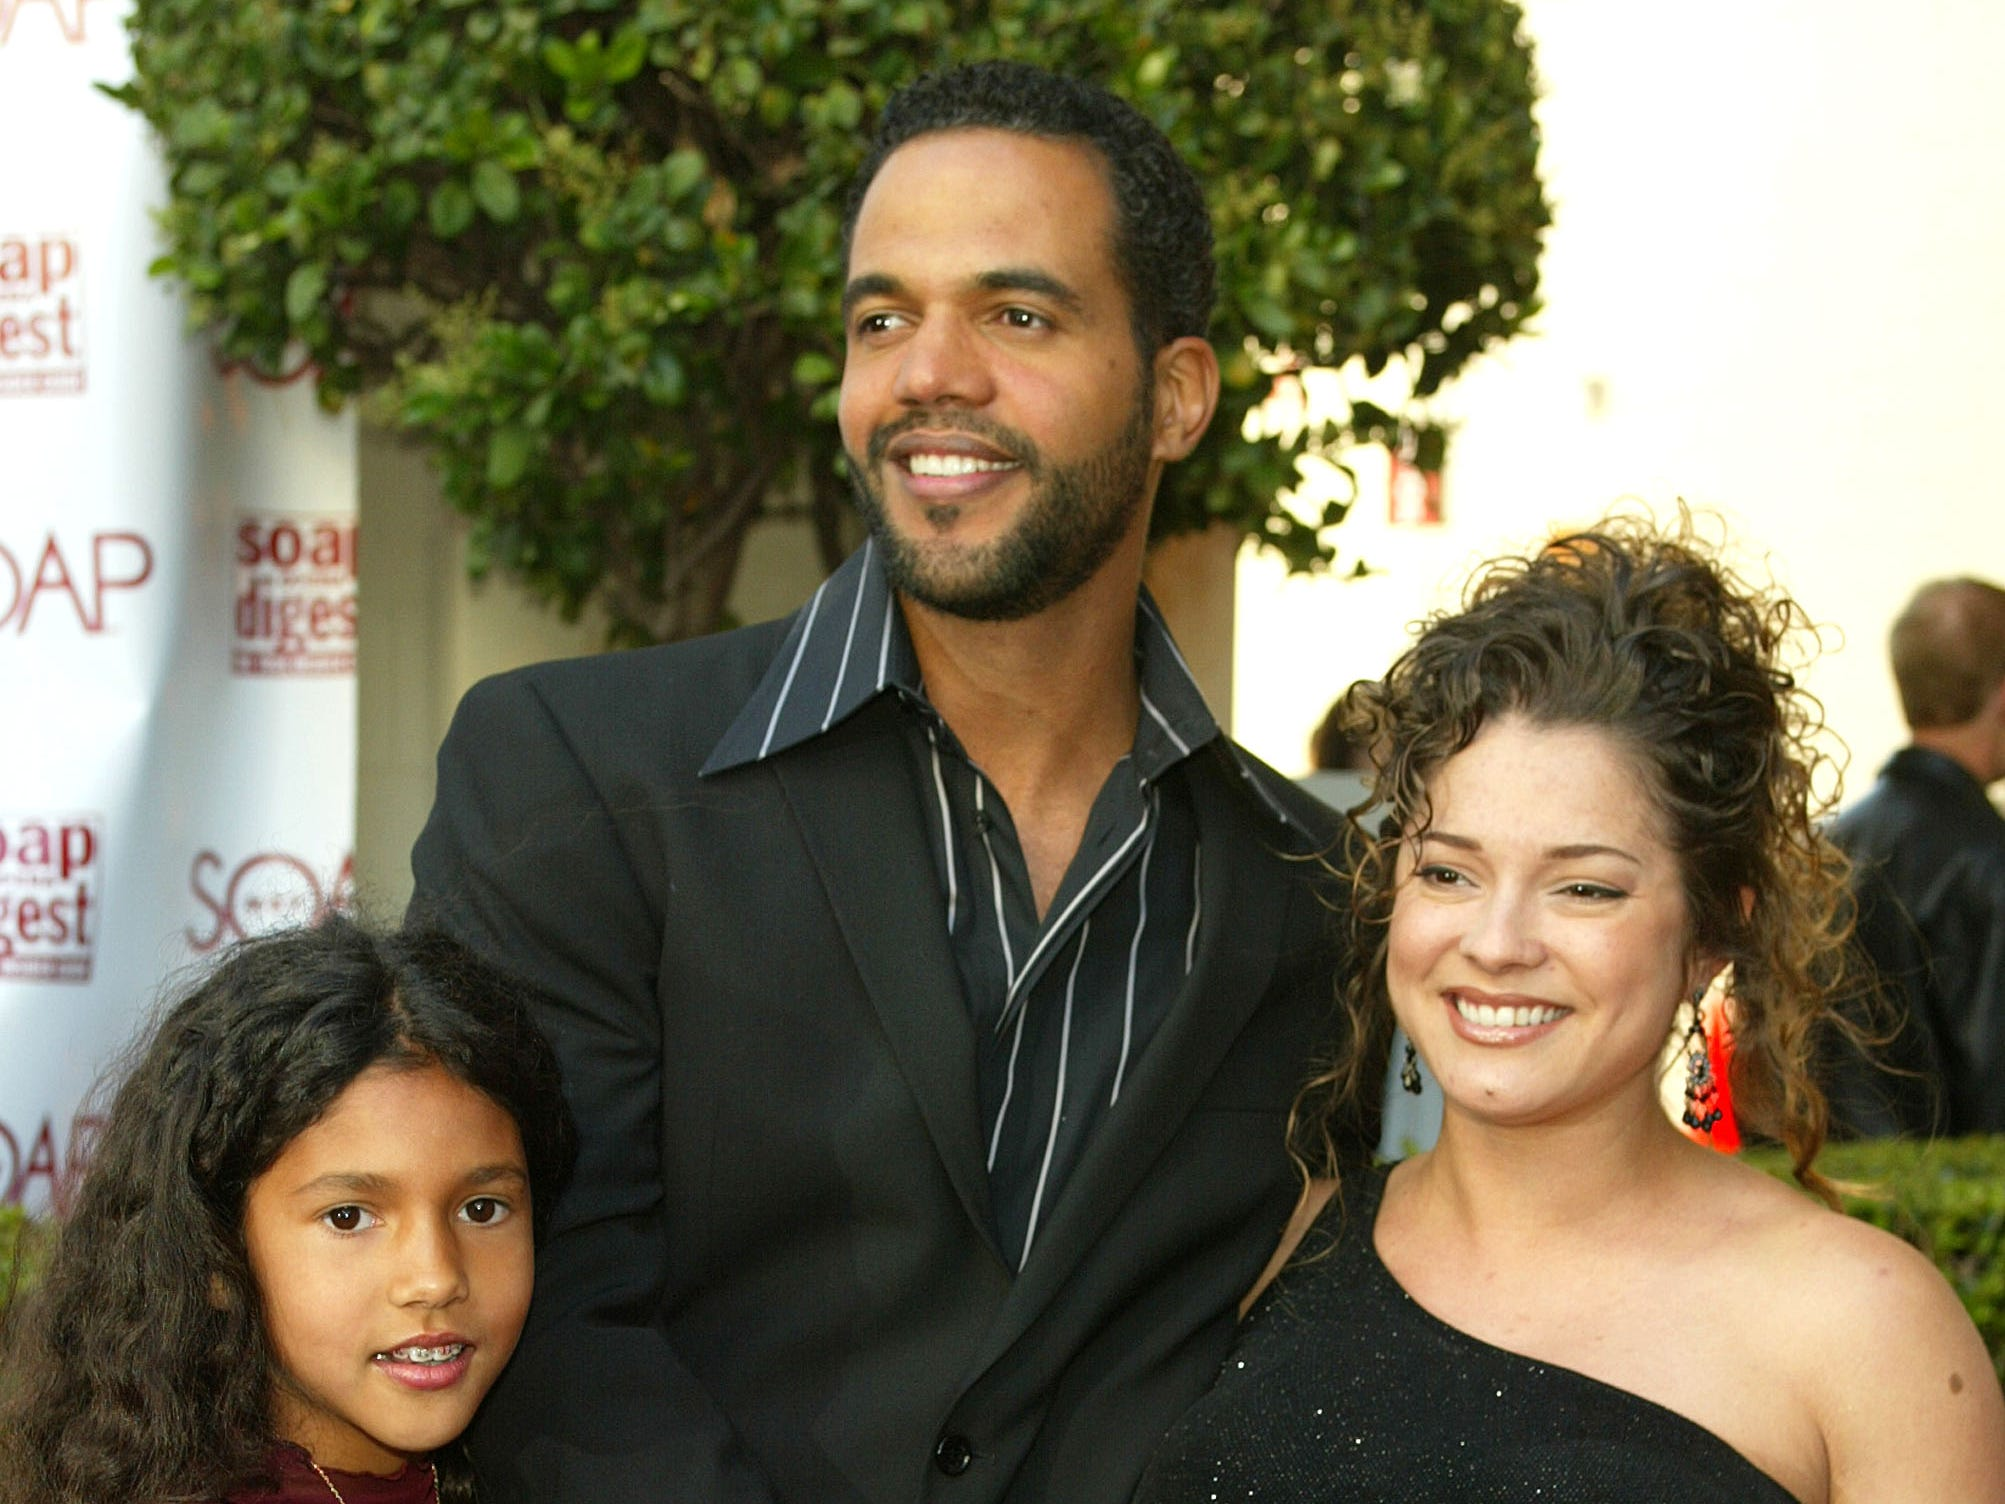 Kristoff St. John with wife Allana and daughter Paris arrive at The Soap Opera Digest Awards, April 5, 2003 in Los Angeles.